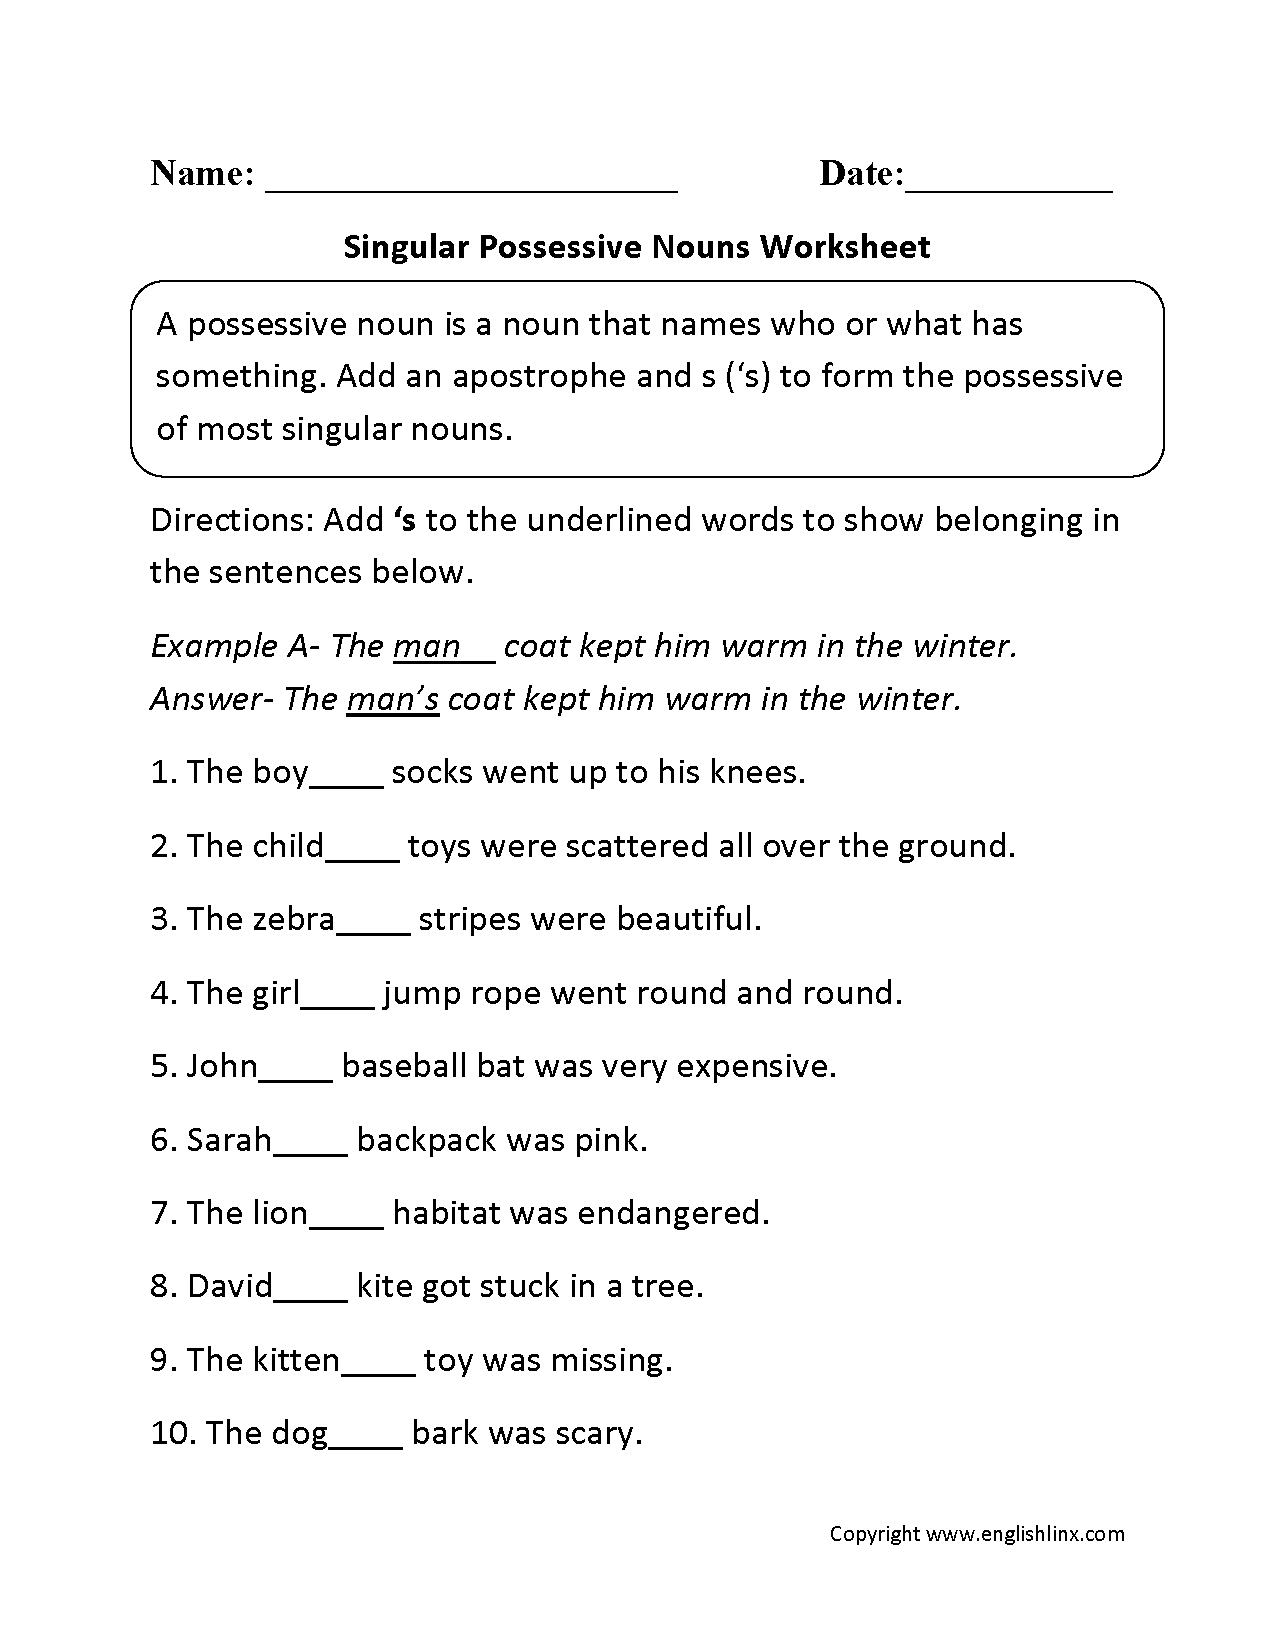 Aldiablosus  Pleasant Nouns Worksheets  Possessive Nouns Worksheets With Fair Possessive Nouns Worksheets With Delightful Decimals To Percents Worksheets Also Free Phonics Worksheets For Kindergarten In Addition Free Printable Color By Number Multiplication Worksheets And Cut And Paste Worksheets For Preschoolers As Well As Constructing Triangles Worksheet Additionally Dihybrid Cross Practice Worksheet From Englishlinxcom With Aldiablosus  Fair Nouns Worksheets  Possessive Nouns Worksheets With Delightful Possessive Nouns Worksheets And Pleasant Decimals To Percents Worksheets Also Free Phonics Worksheets For Kindergarten In Addition Free Printable Color By Number Multiplication Worksheets From Englishlinxcom